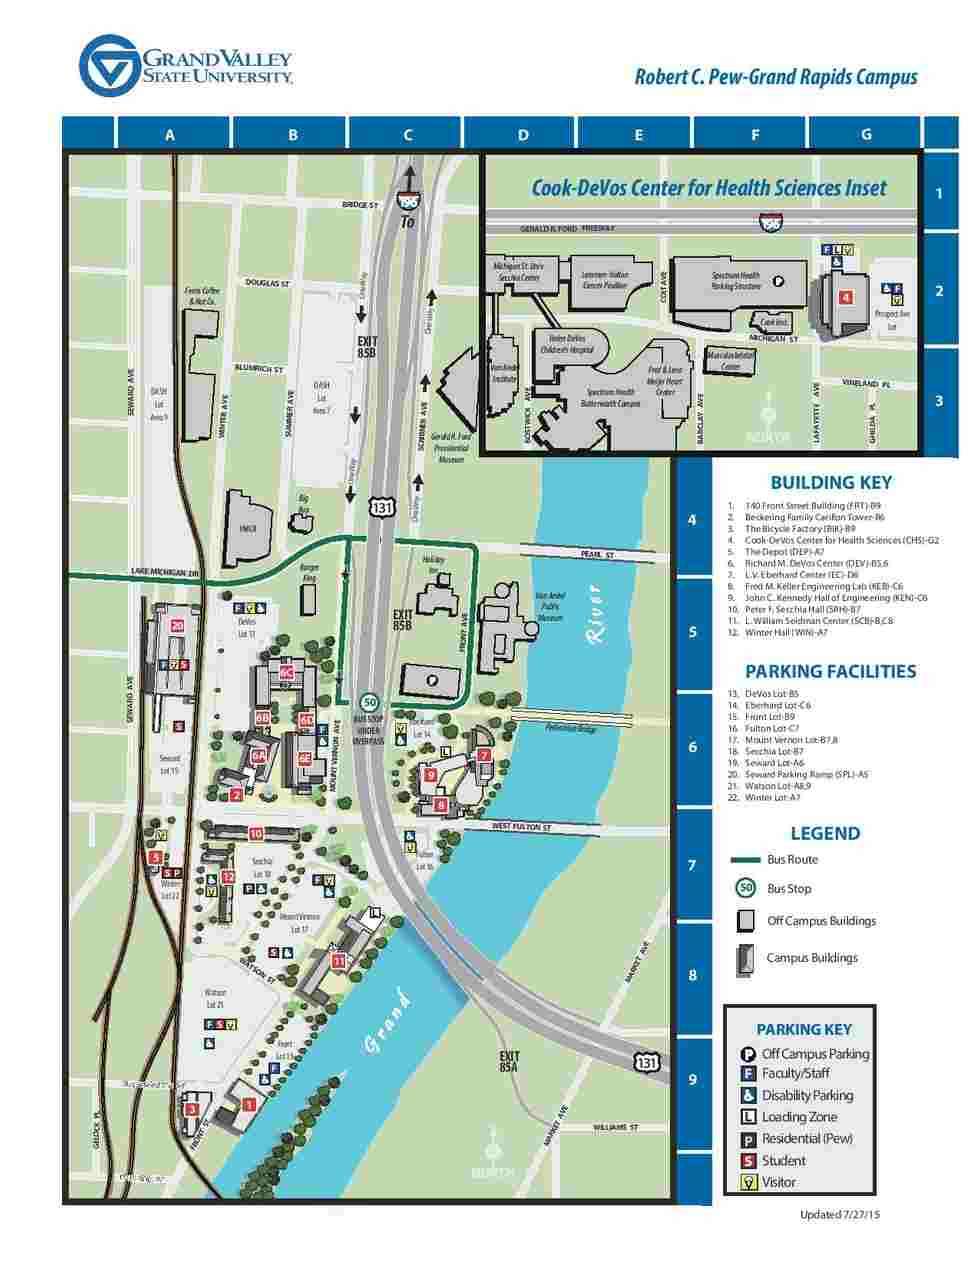 Gvsu Pew Campus Map Directions and Parking   School of Engineering   Grand Valley